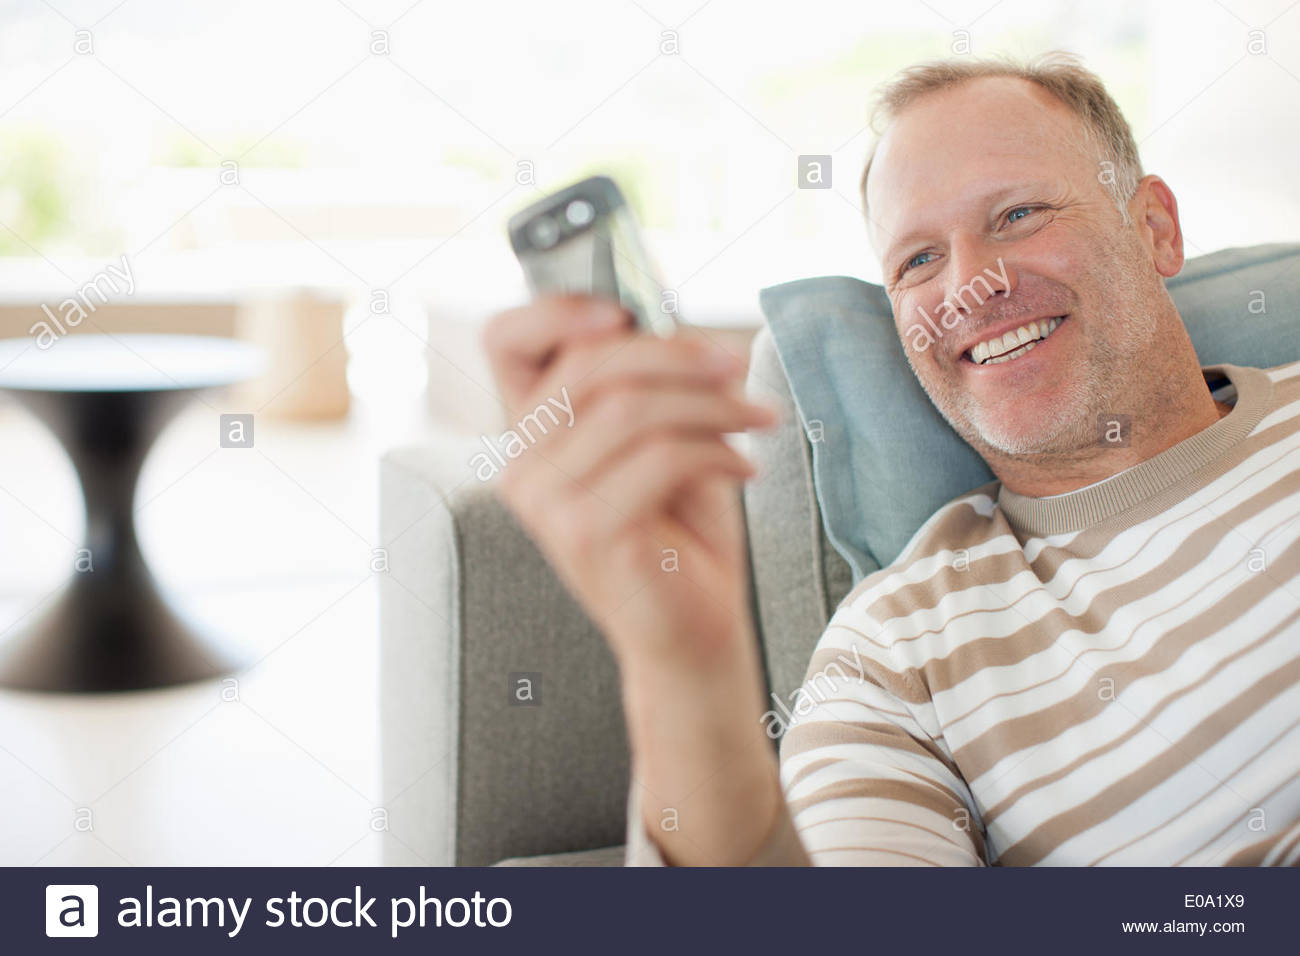 Man text messaging on cell phone - Stock Image